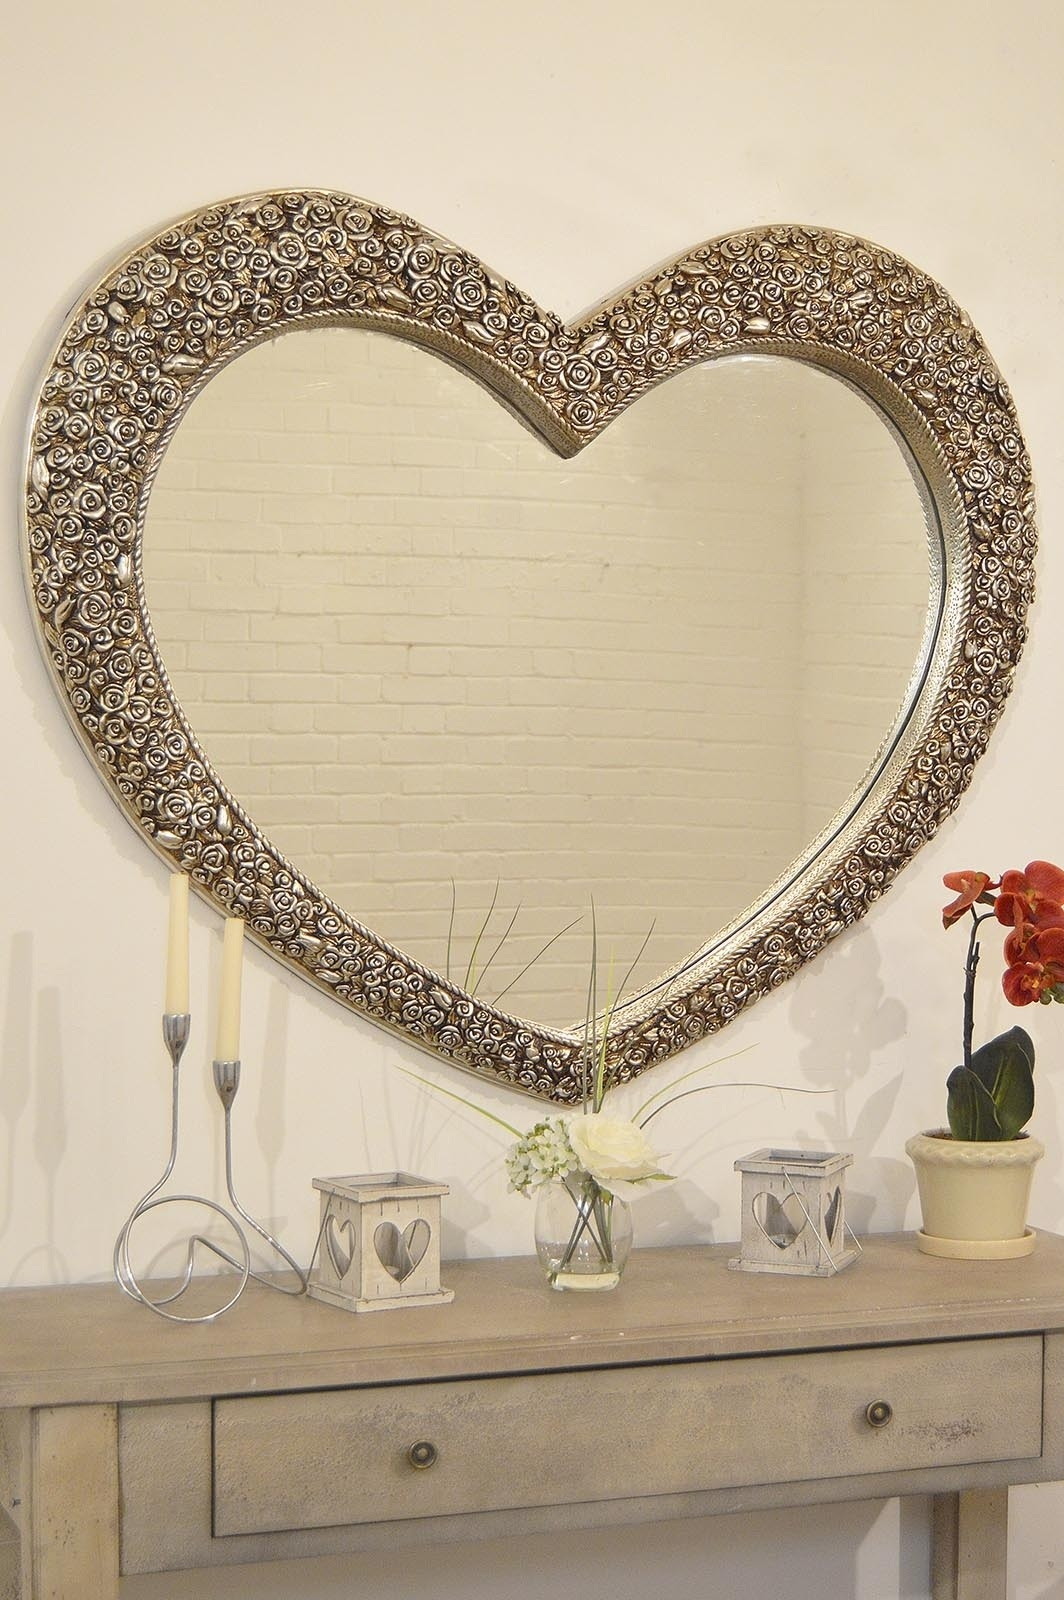 V Large Antique Silver Heart Shaped Wall Mirror 3ft1x3ft7 With Regard To Large Antique Silver Mirror (View 4 of 15)